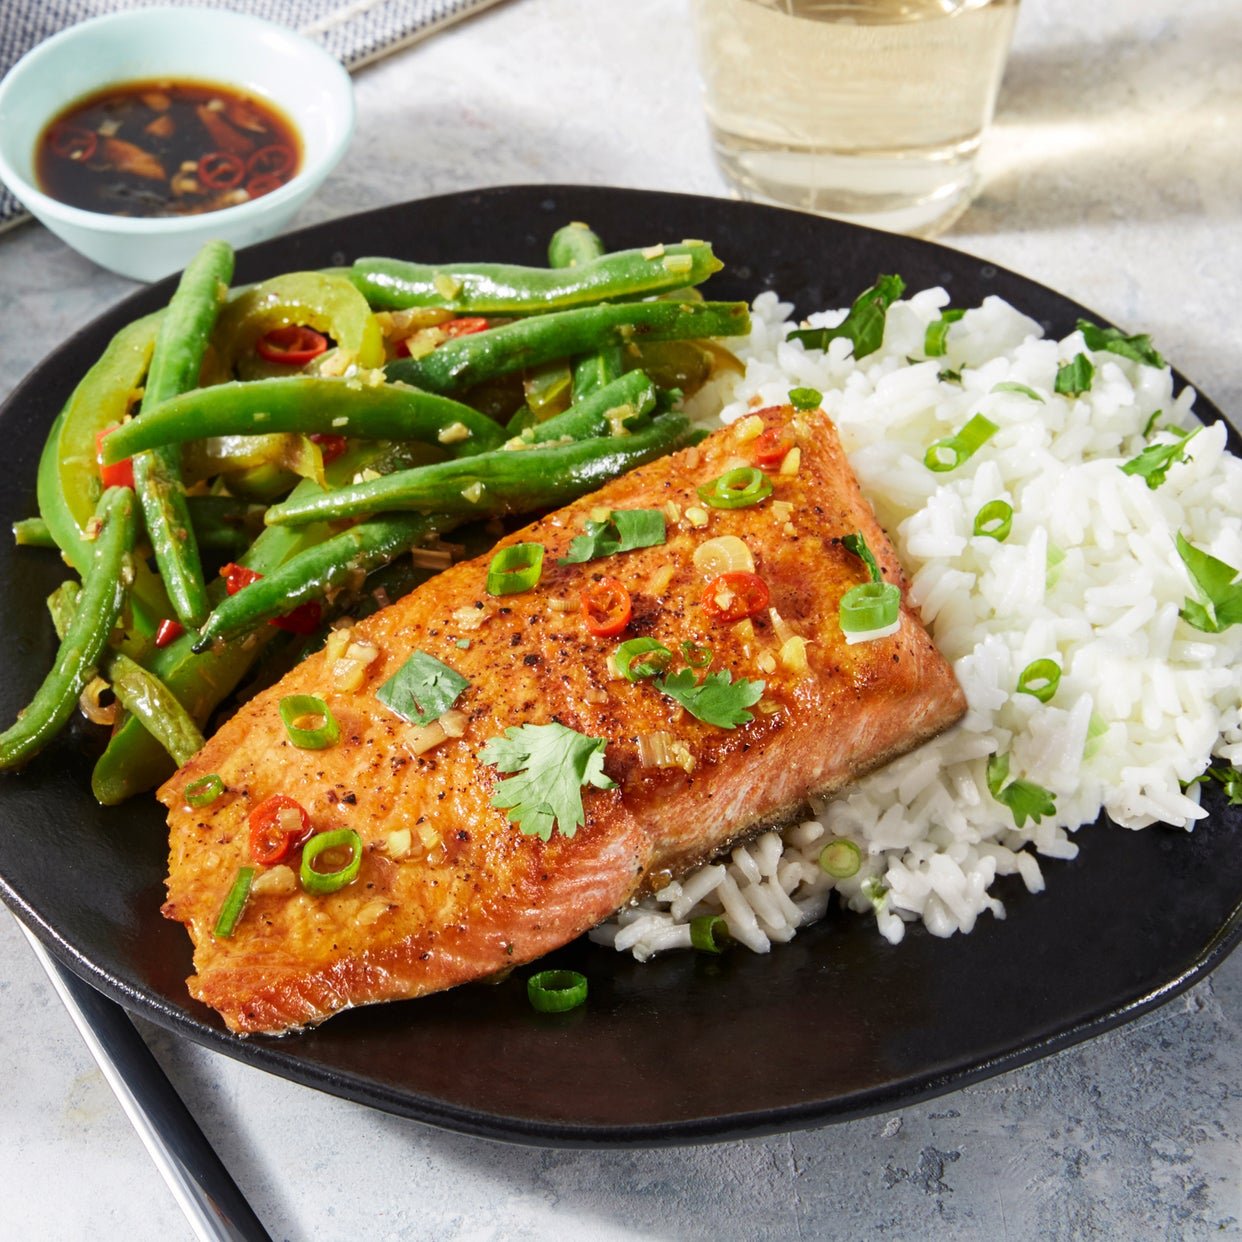 Spicy Lemongrass Salmon with Green Beans & Herb Rice